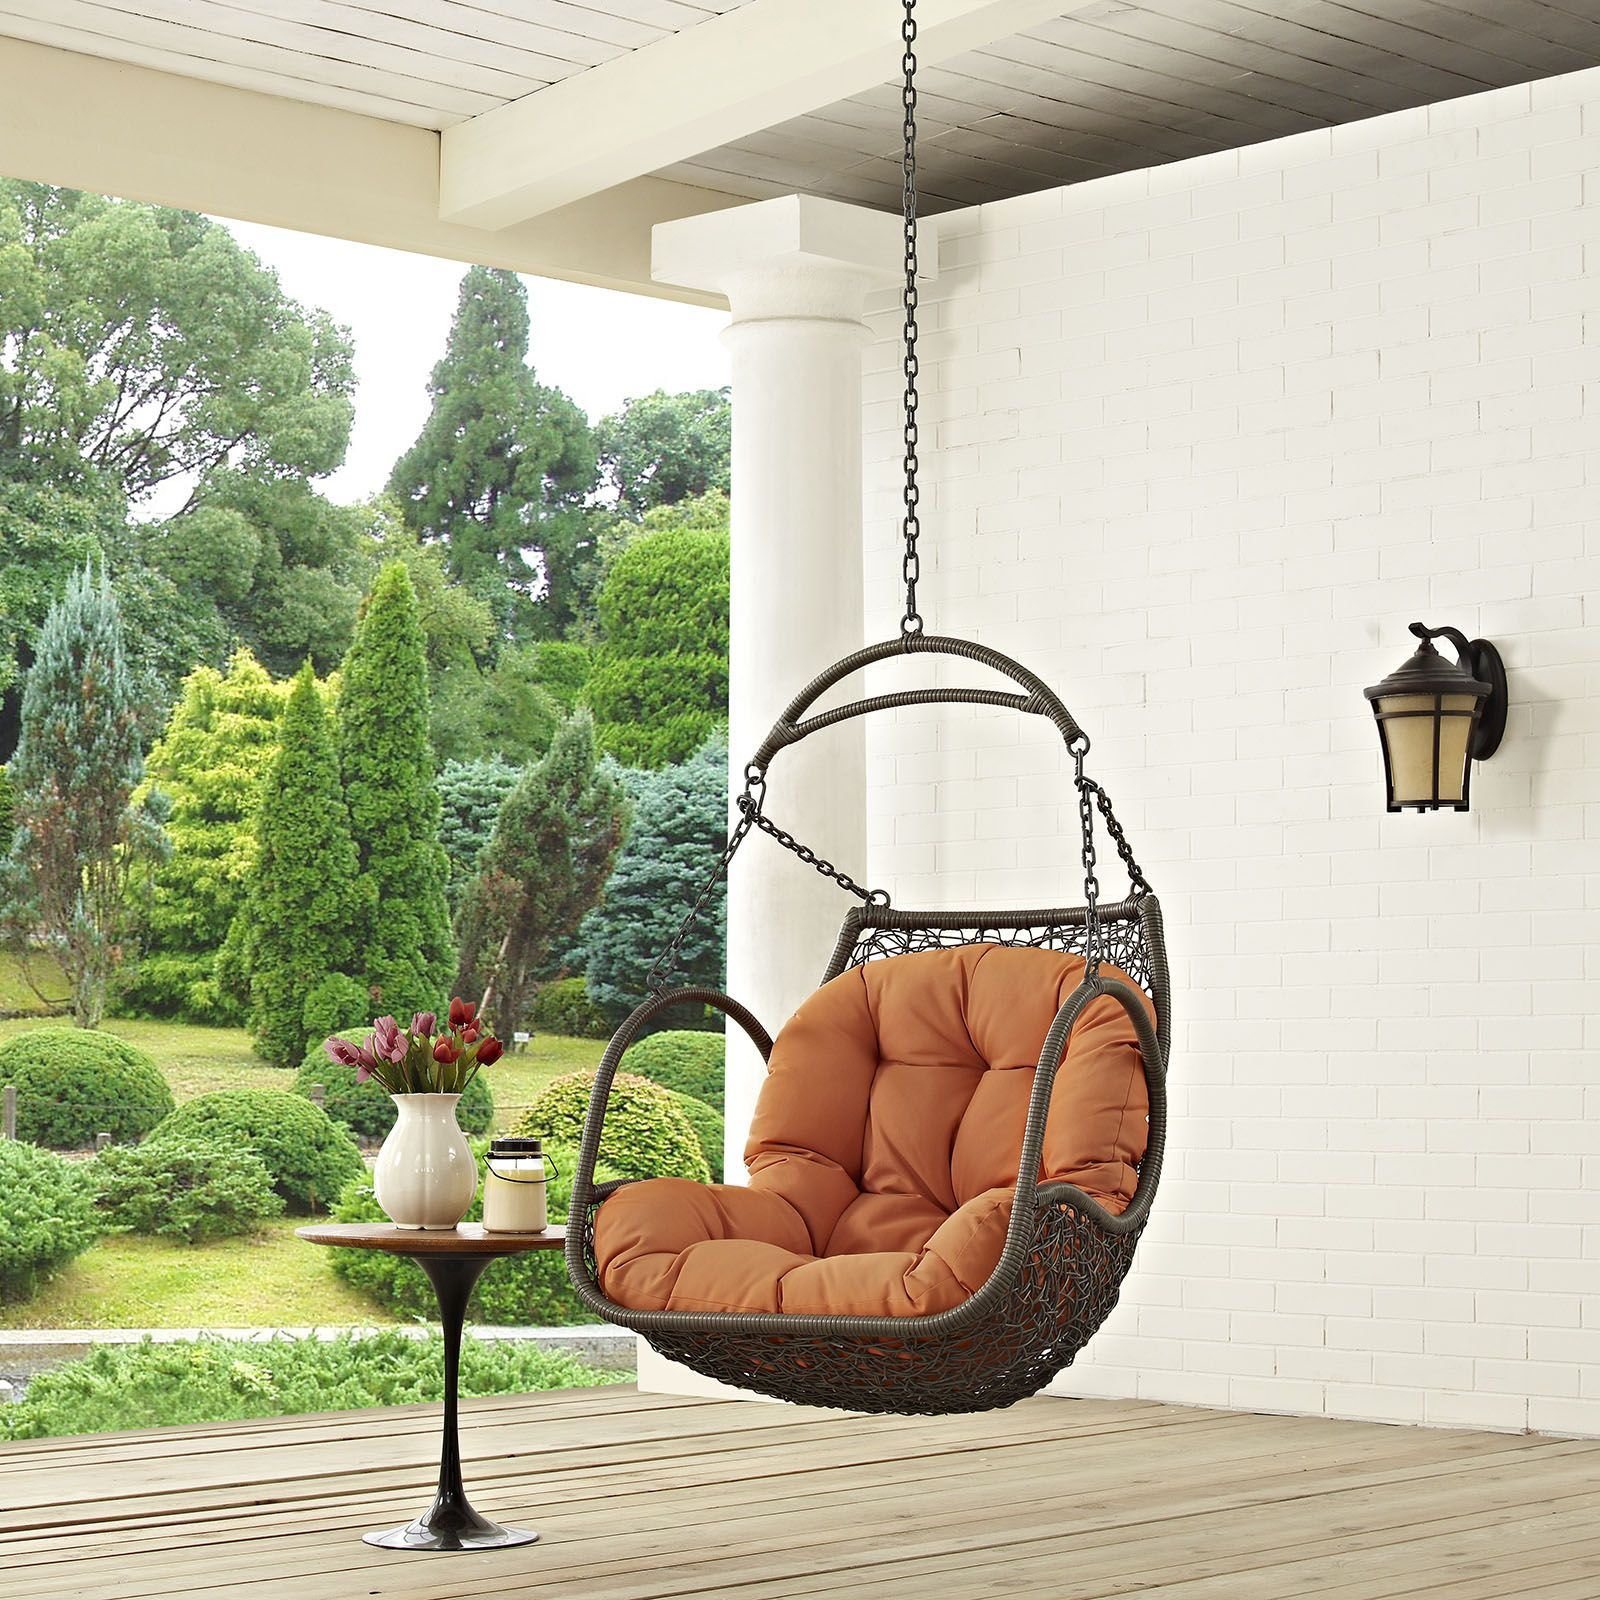 Arbor outdoor patio wood swing chair arbor swing swing chairs and